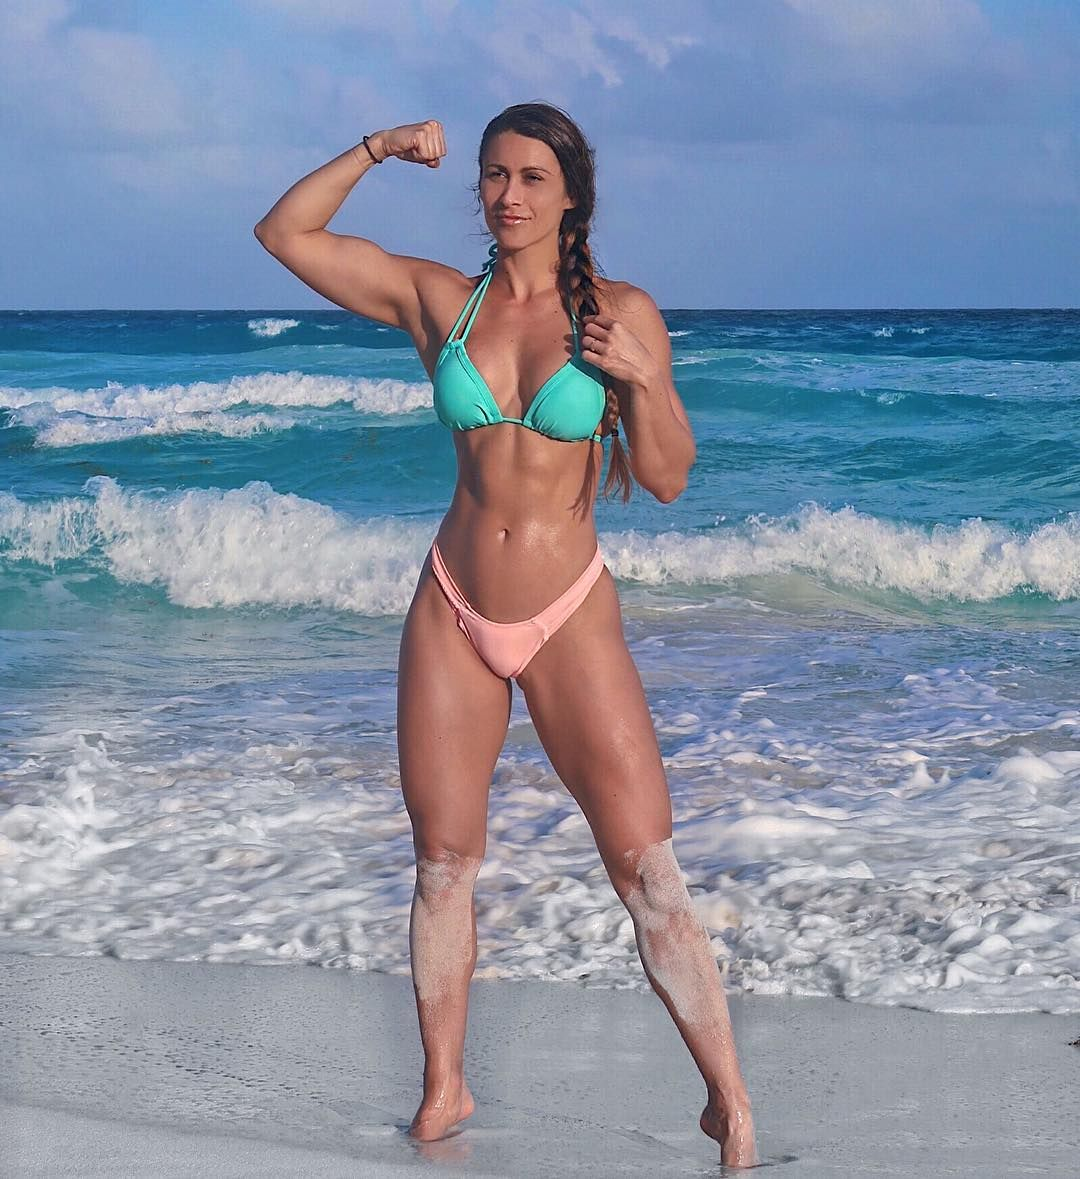 Anais Zanotti anais zanotti | fitness models, muscle girls, fit women